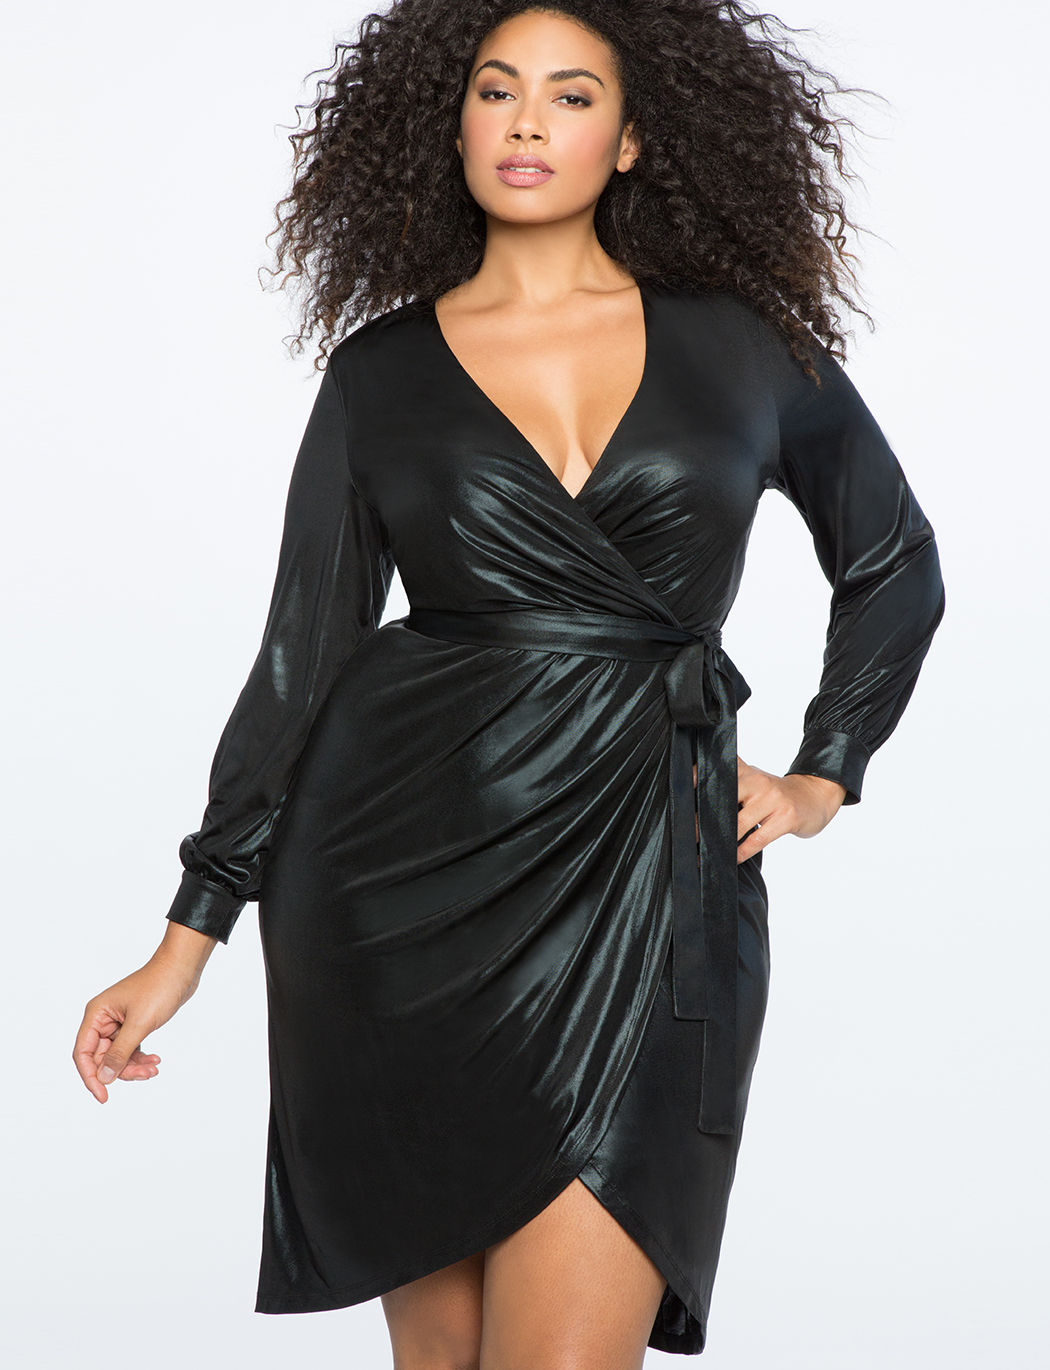 Metallic Knit Wrap Dress | Women\'s Plus Size Dresses | ELOQUII